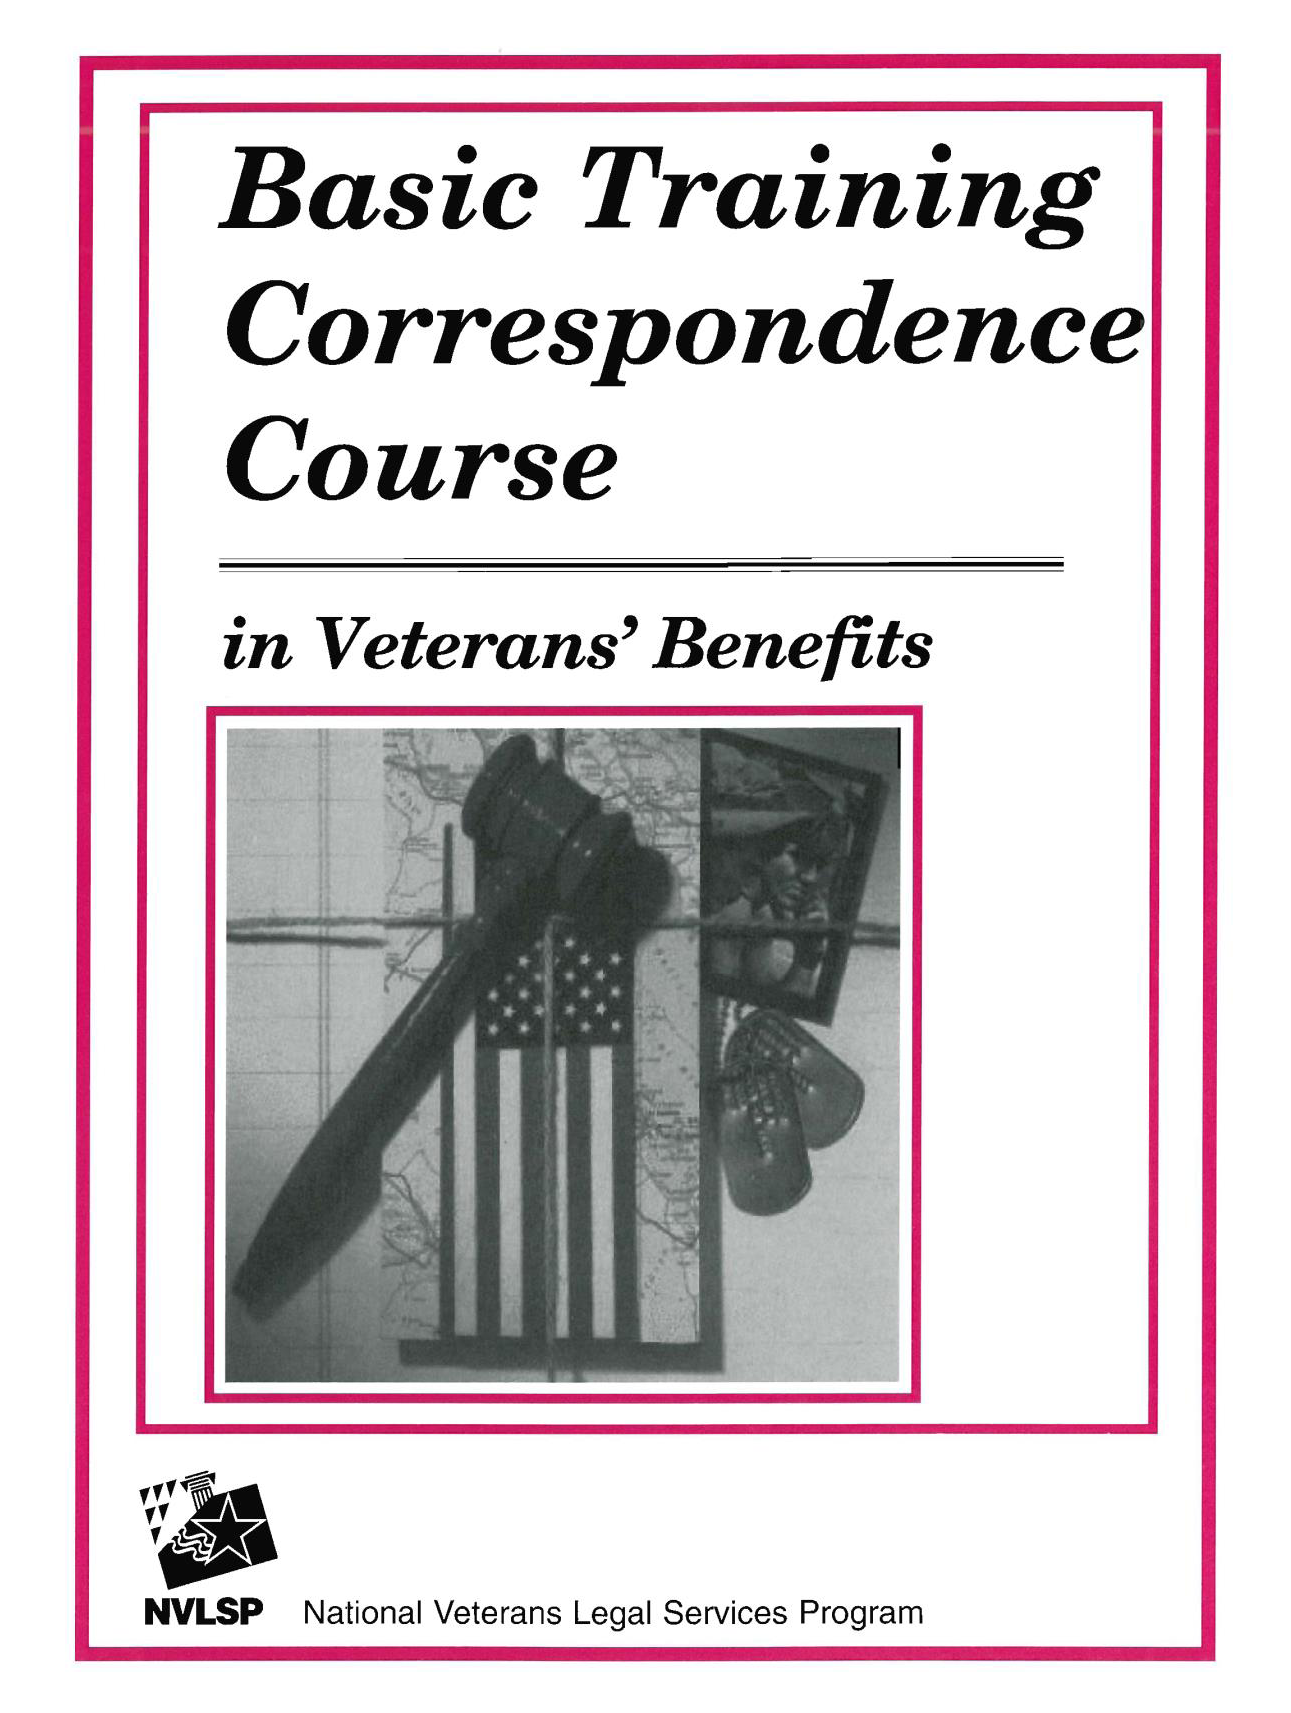 Updated: The Basic Training Course for Veterans Benefits